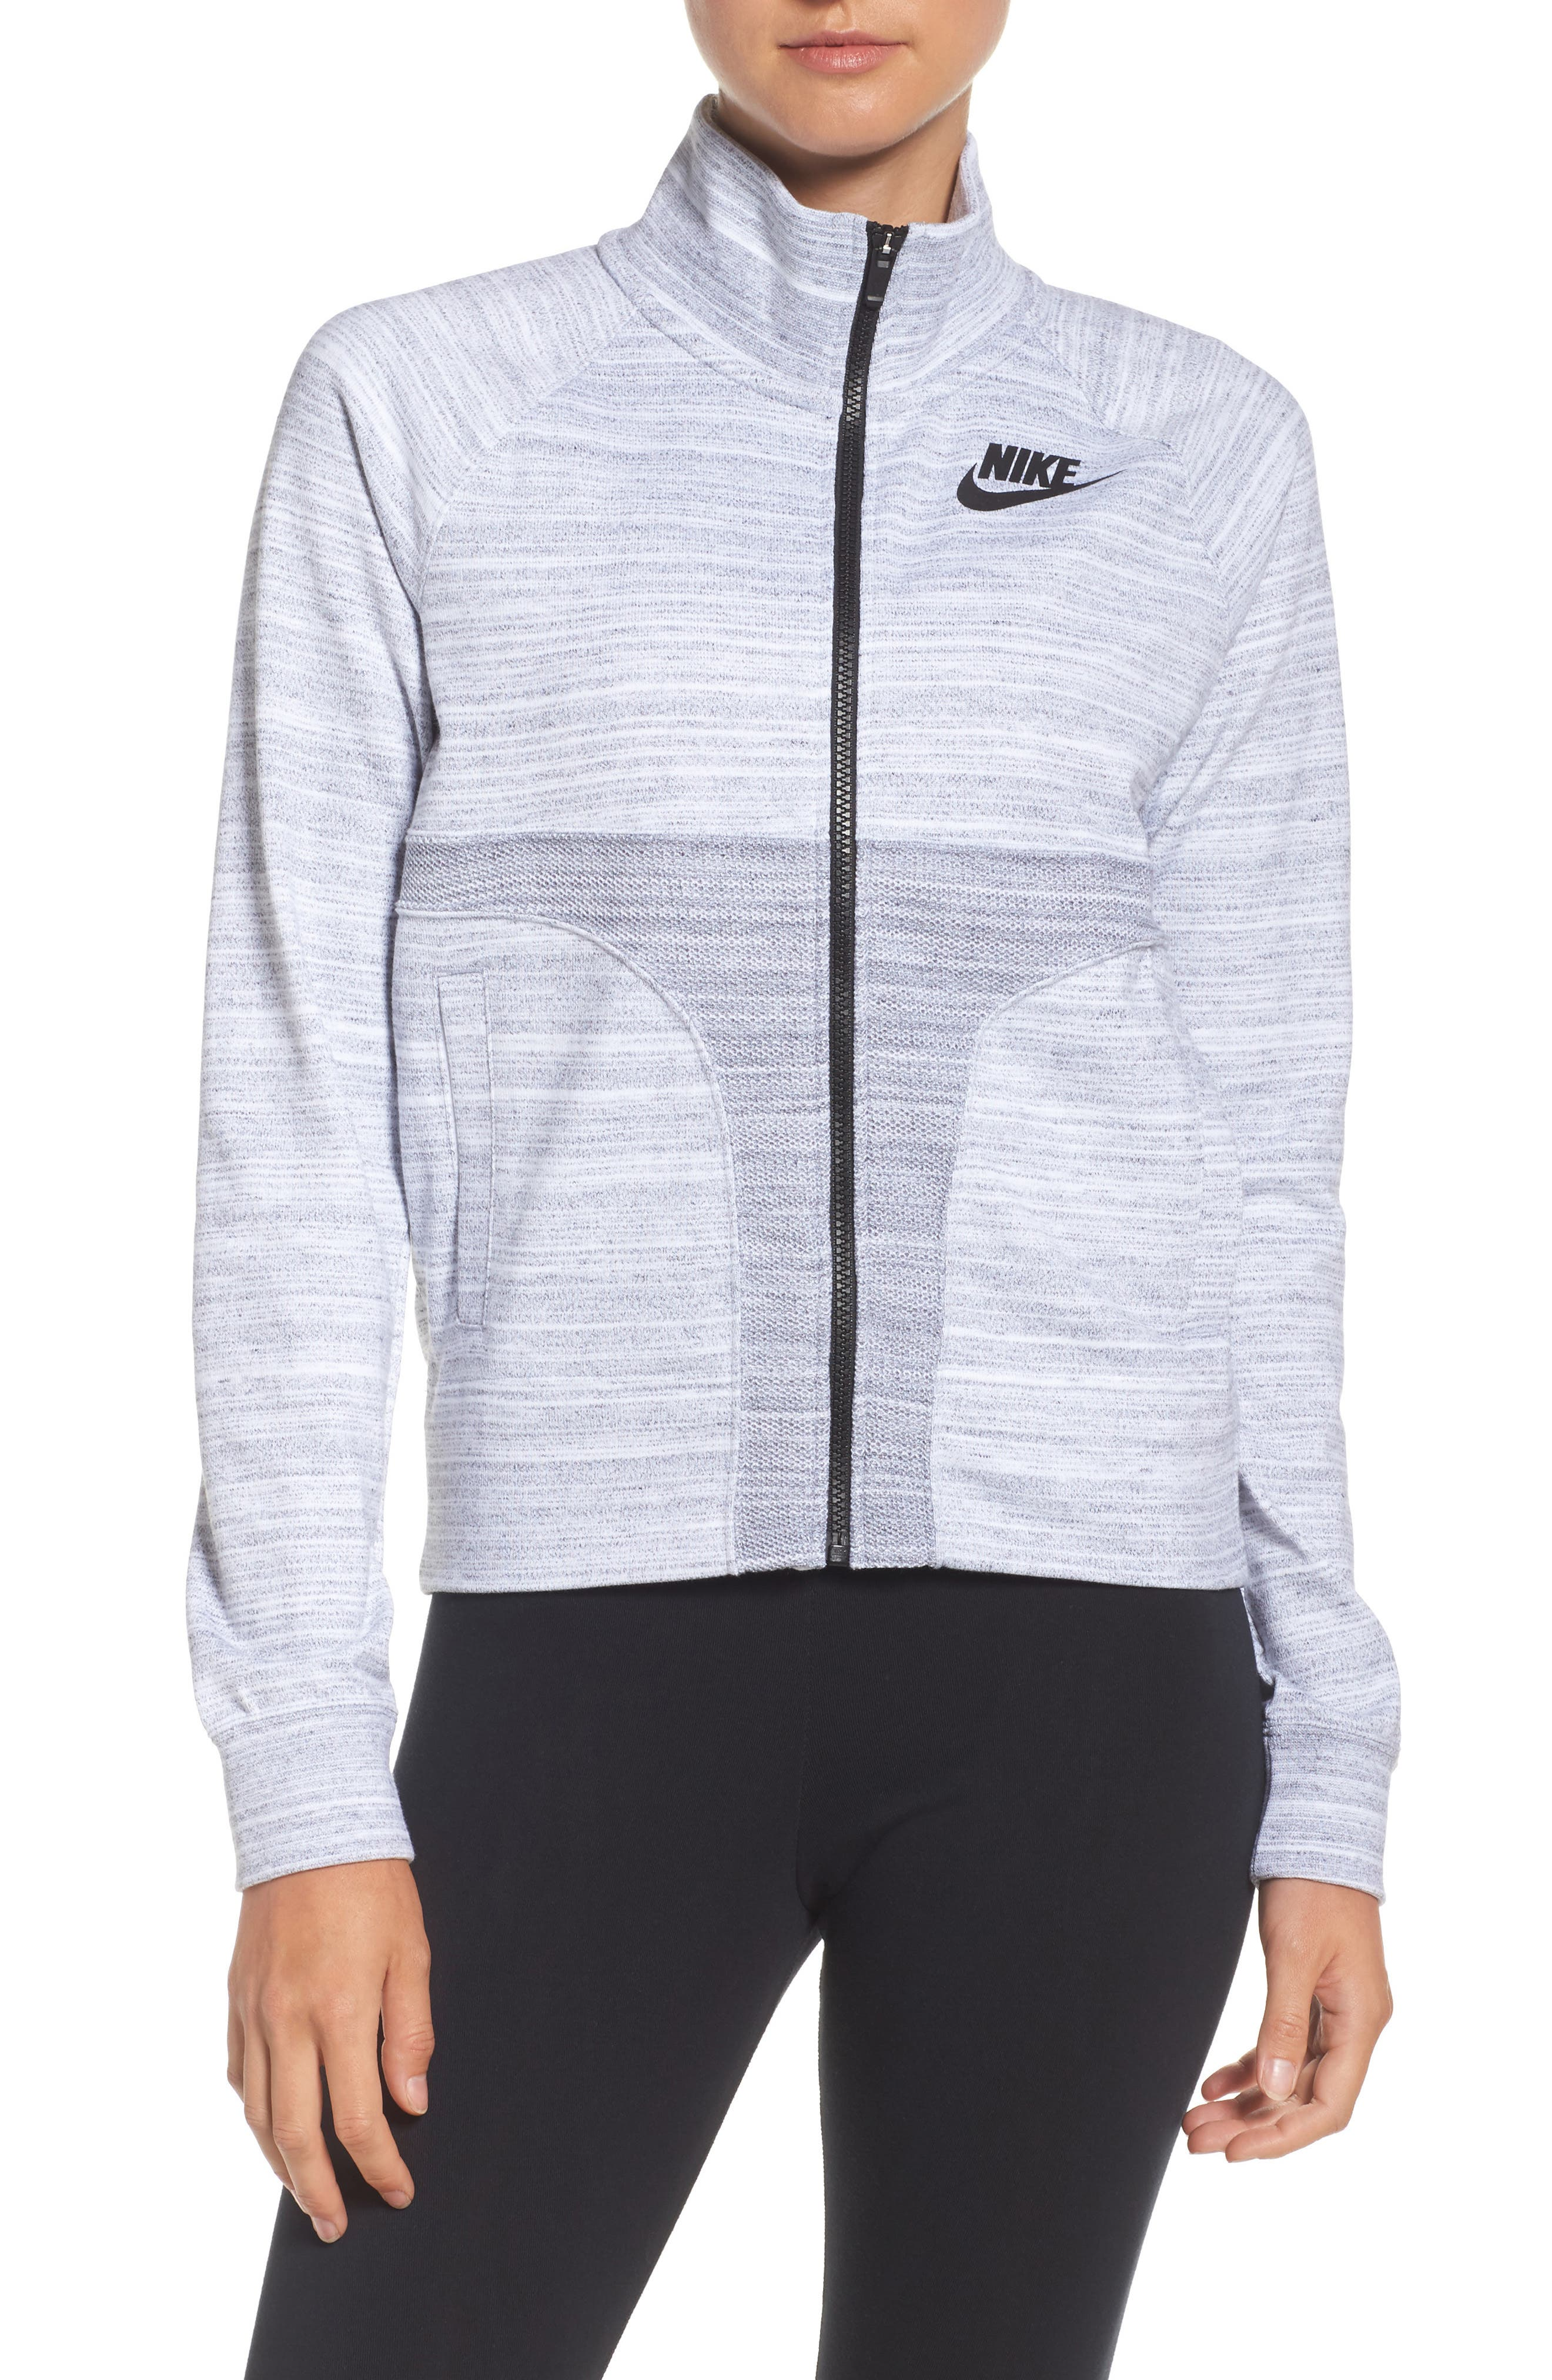 Alternate Image 1 Selected - Nike Sportswear Advance 15 Track Jacket